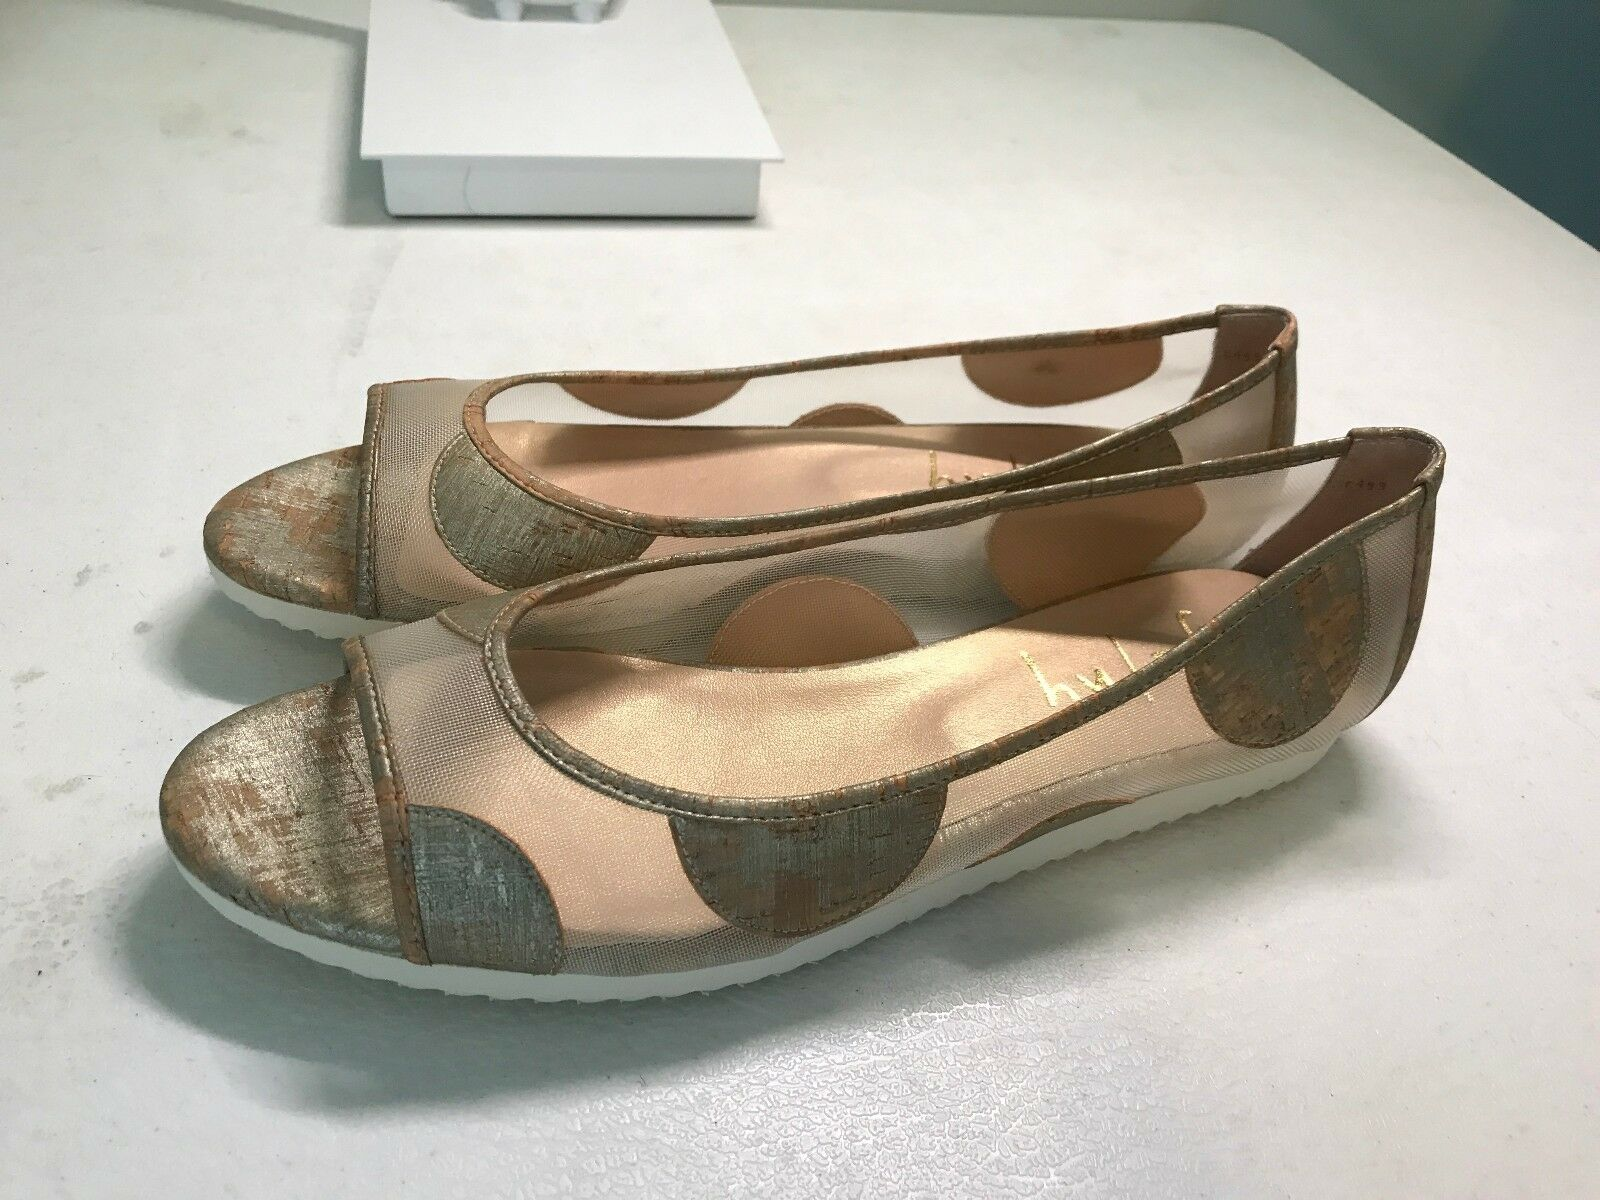 NEVER WORN fs ny gold Mesh Sandals - Size 9.5B